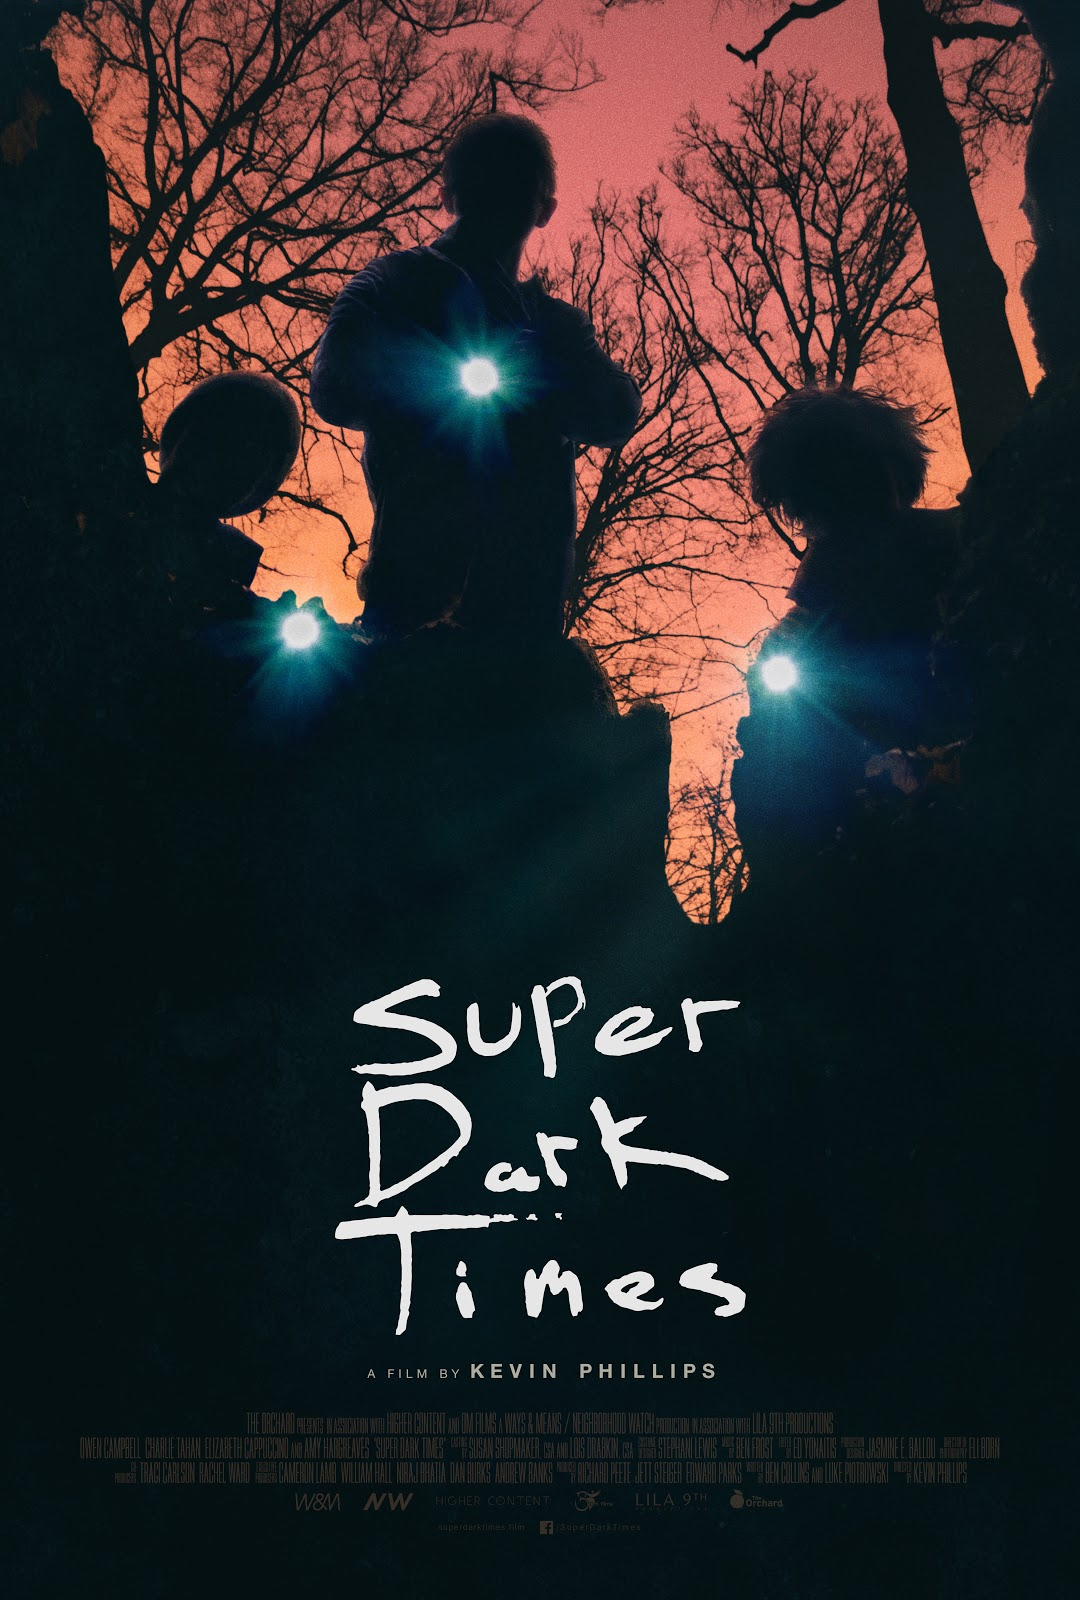 SUPERDARKTIMES_27x40_FINISH